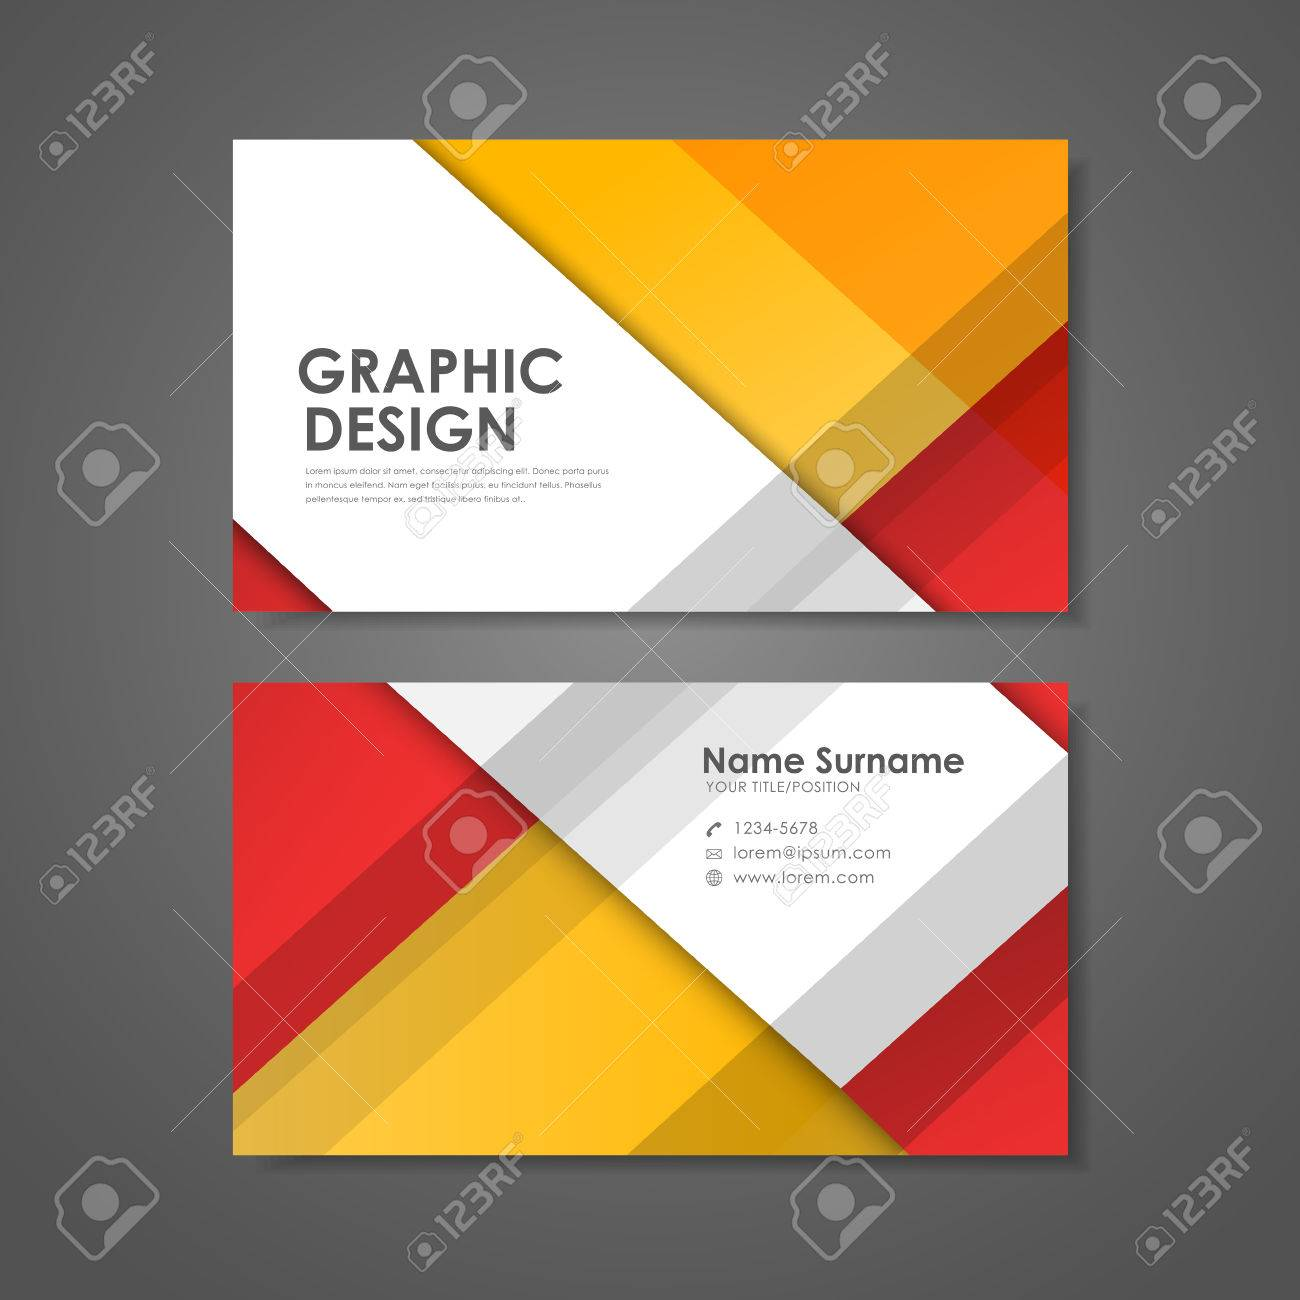 Abstract creative business card template in red and orange royalty abstract creative business card template in red and orange stock vector 31845780 cheaphphosting Gallery